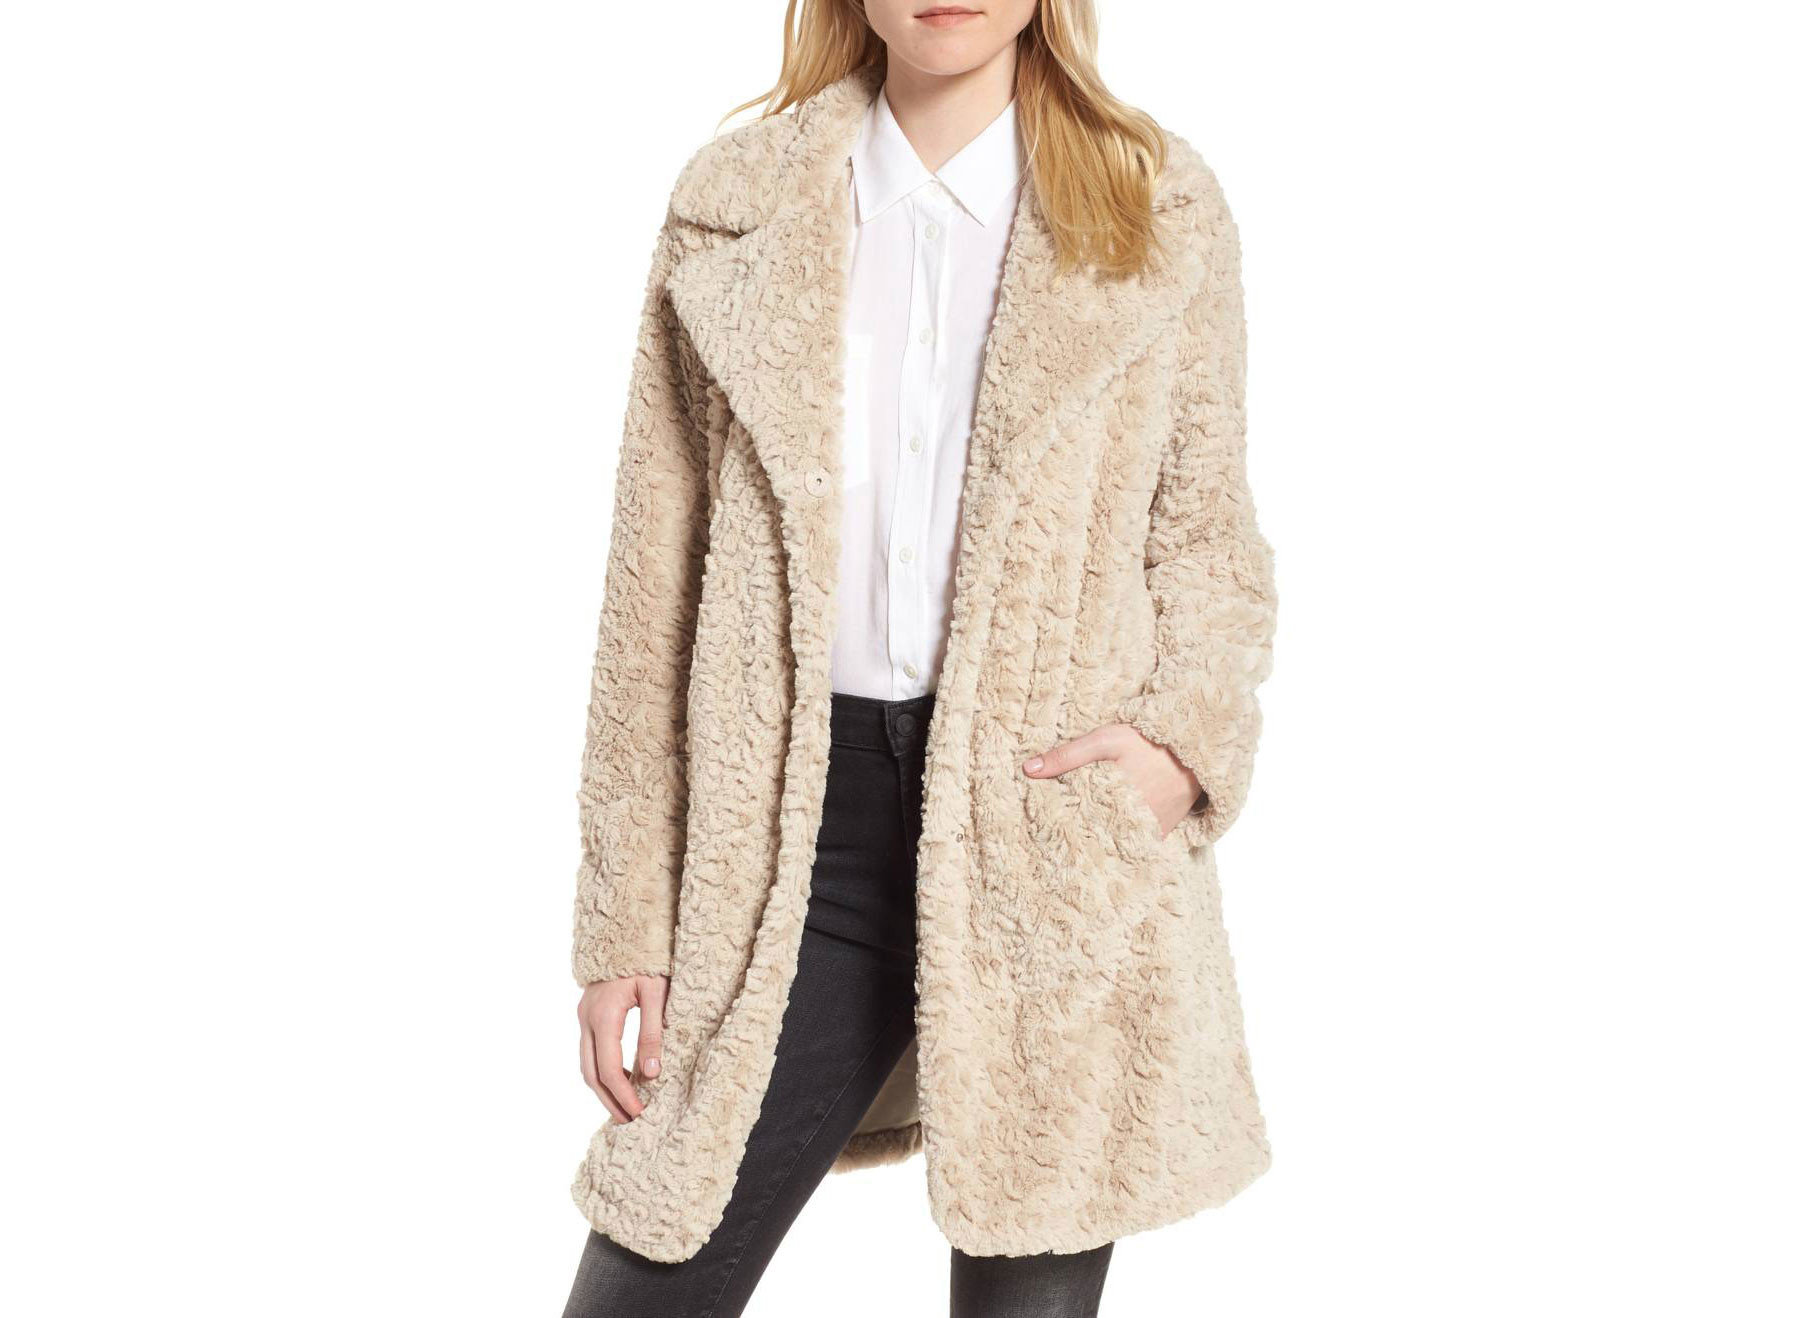 Style + Design Travel Shop clothing person coat woman wearing woolen suit overcoat fur outerwear posing beige cardigan fur clothing dressed tan clothes